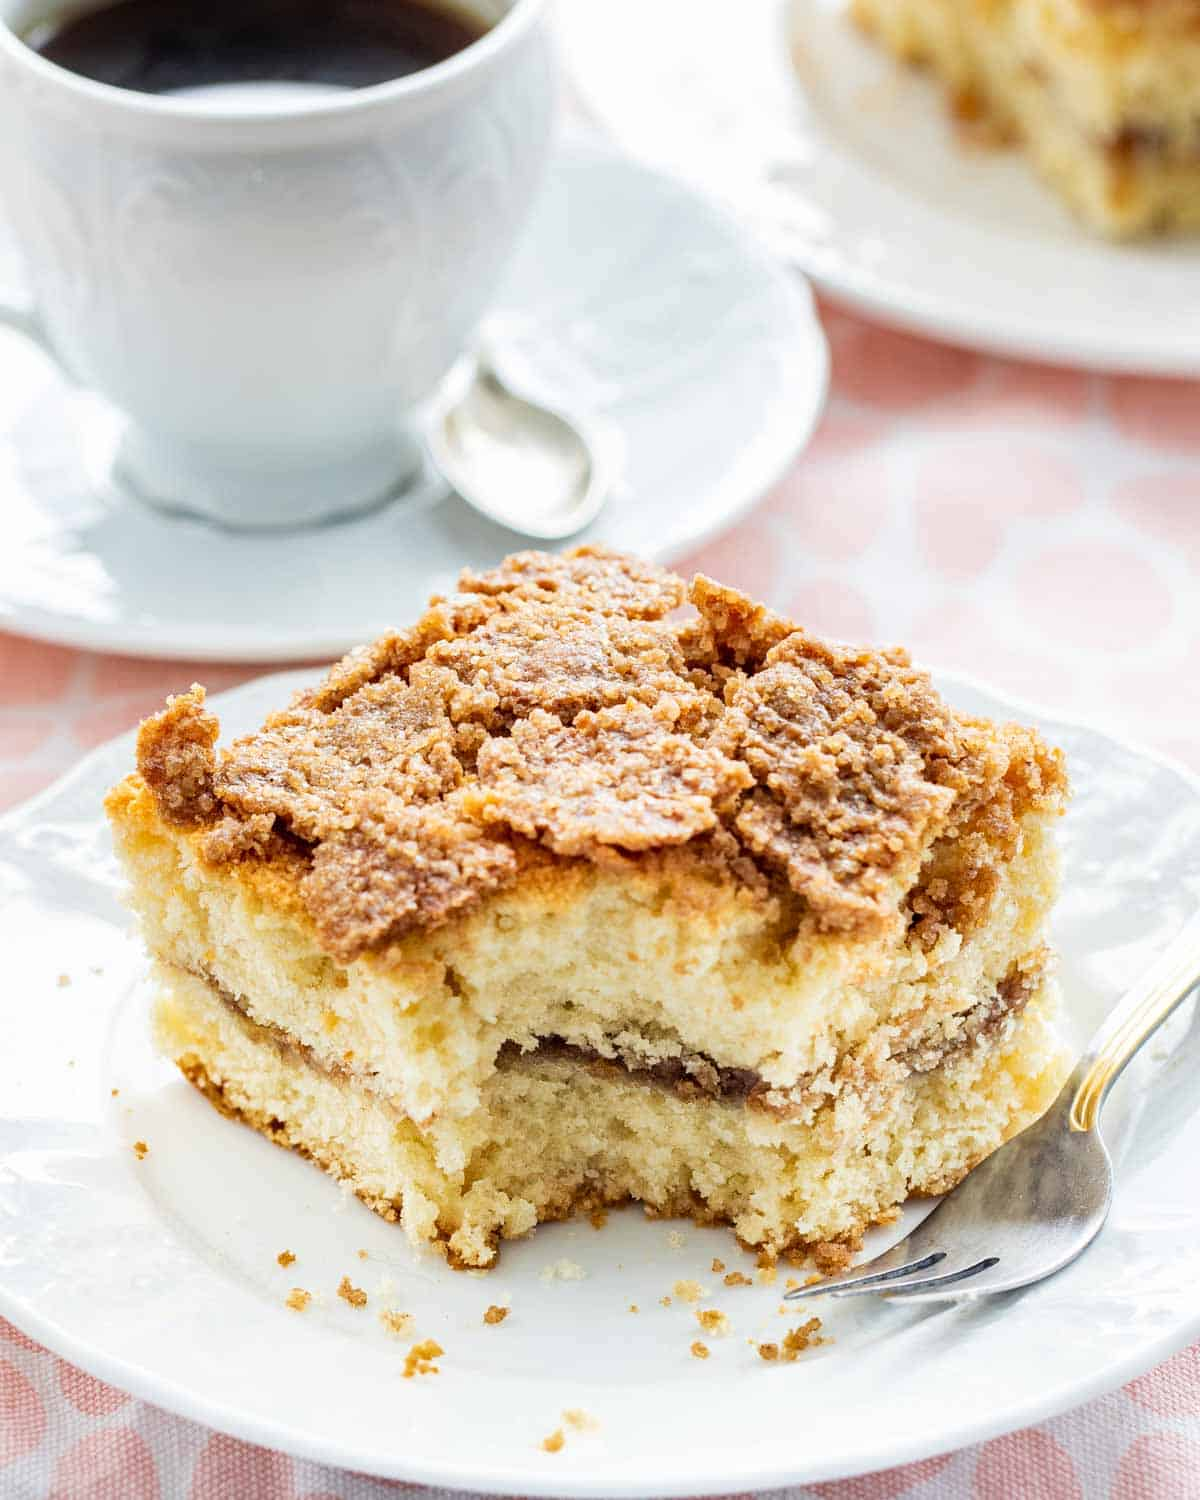 a slice of coffee cake on a white plate with a bite taken out of it and a cup of coffee in the background